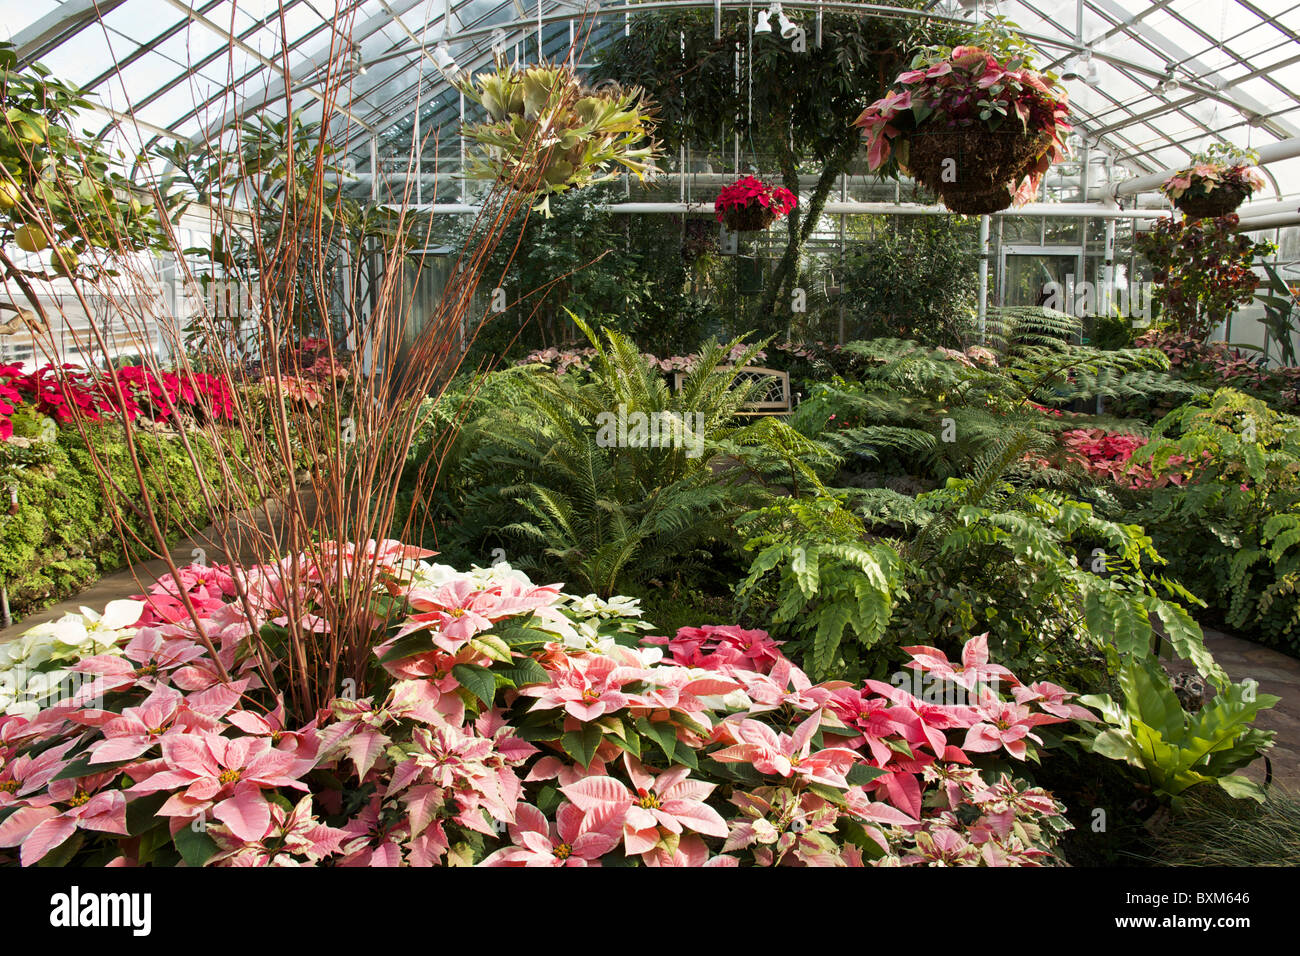 Captivating Oak Park Conservatory, Illinois. Poinsettias On Display At Christmas